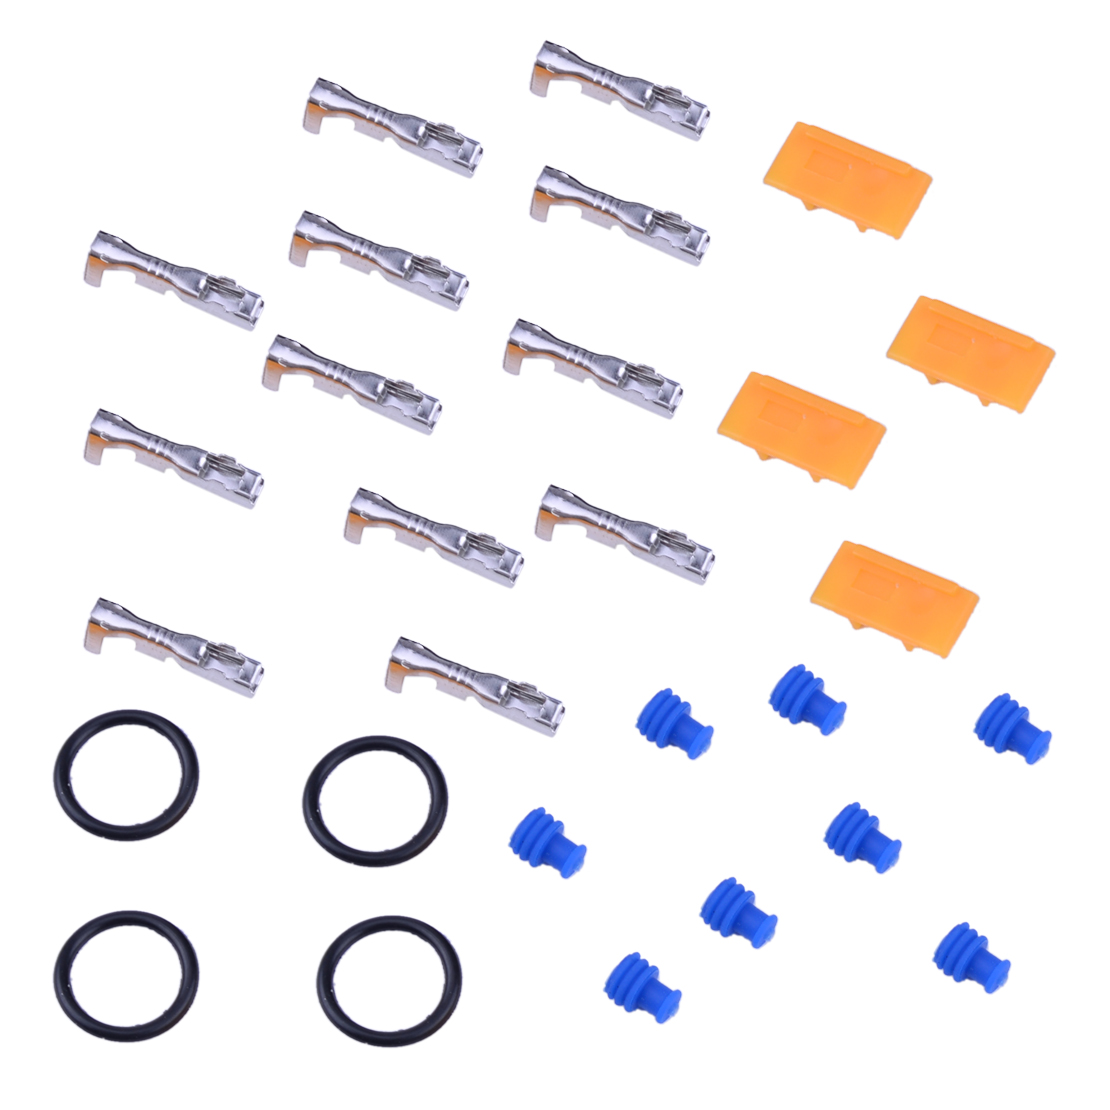 4X Ignition Coil Wire Harness Connector Terminal Plug for ...